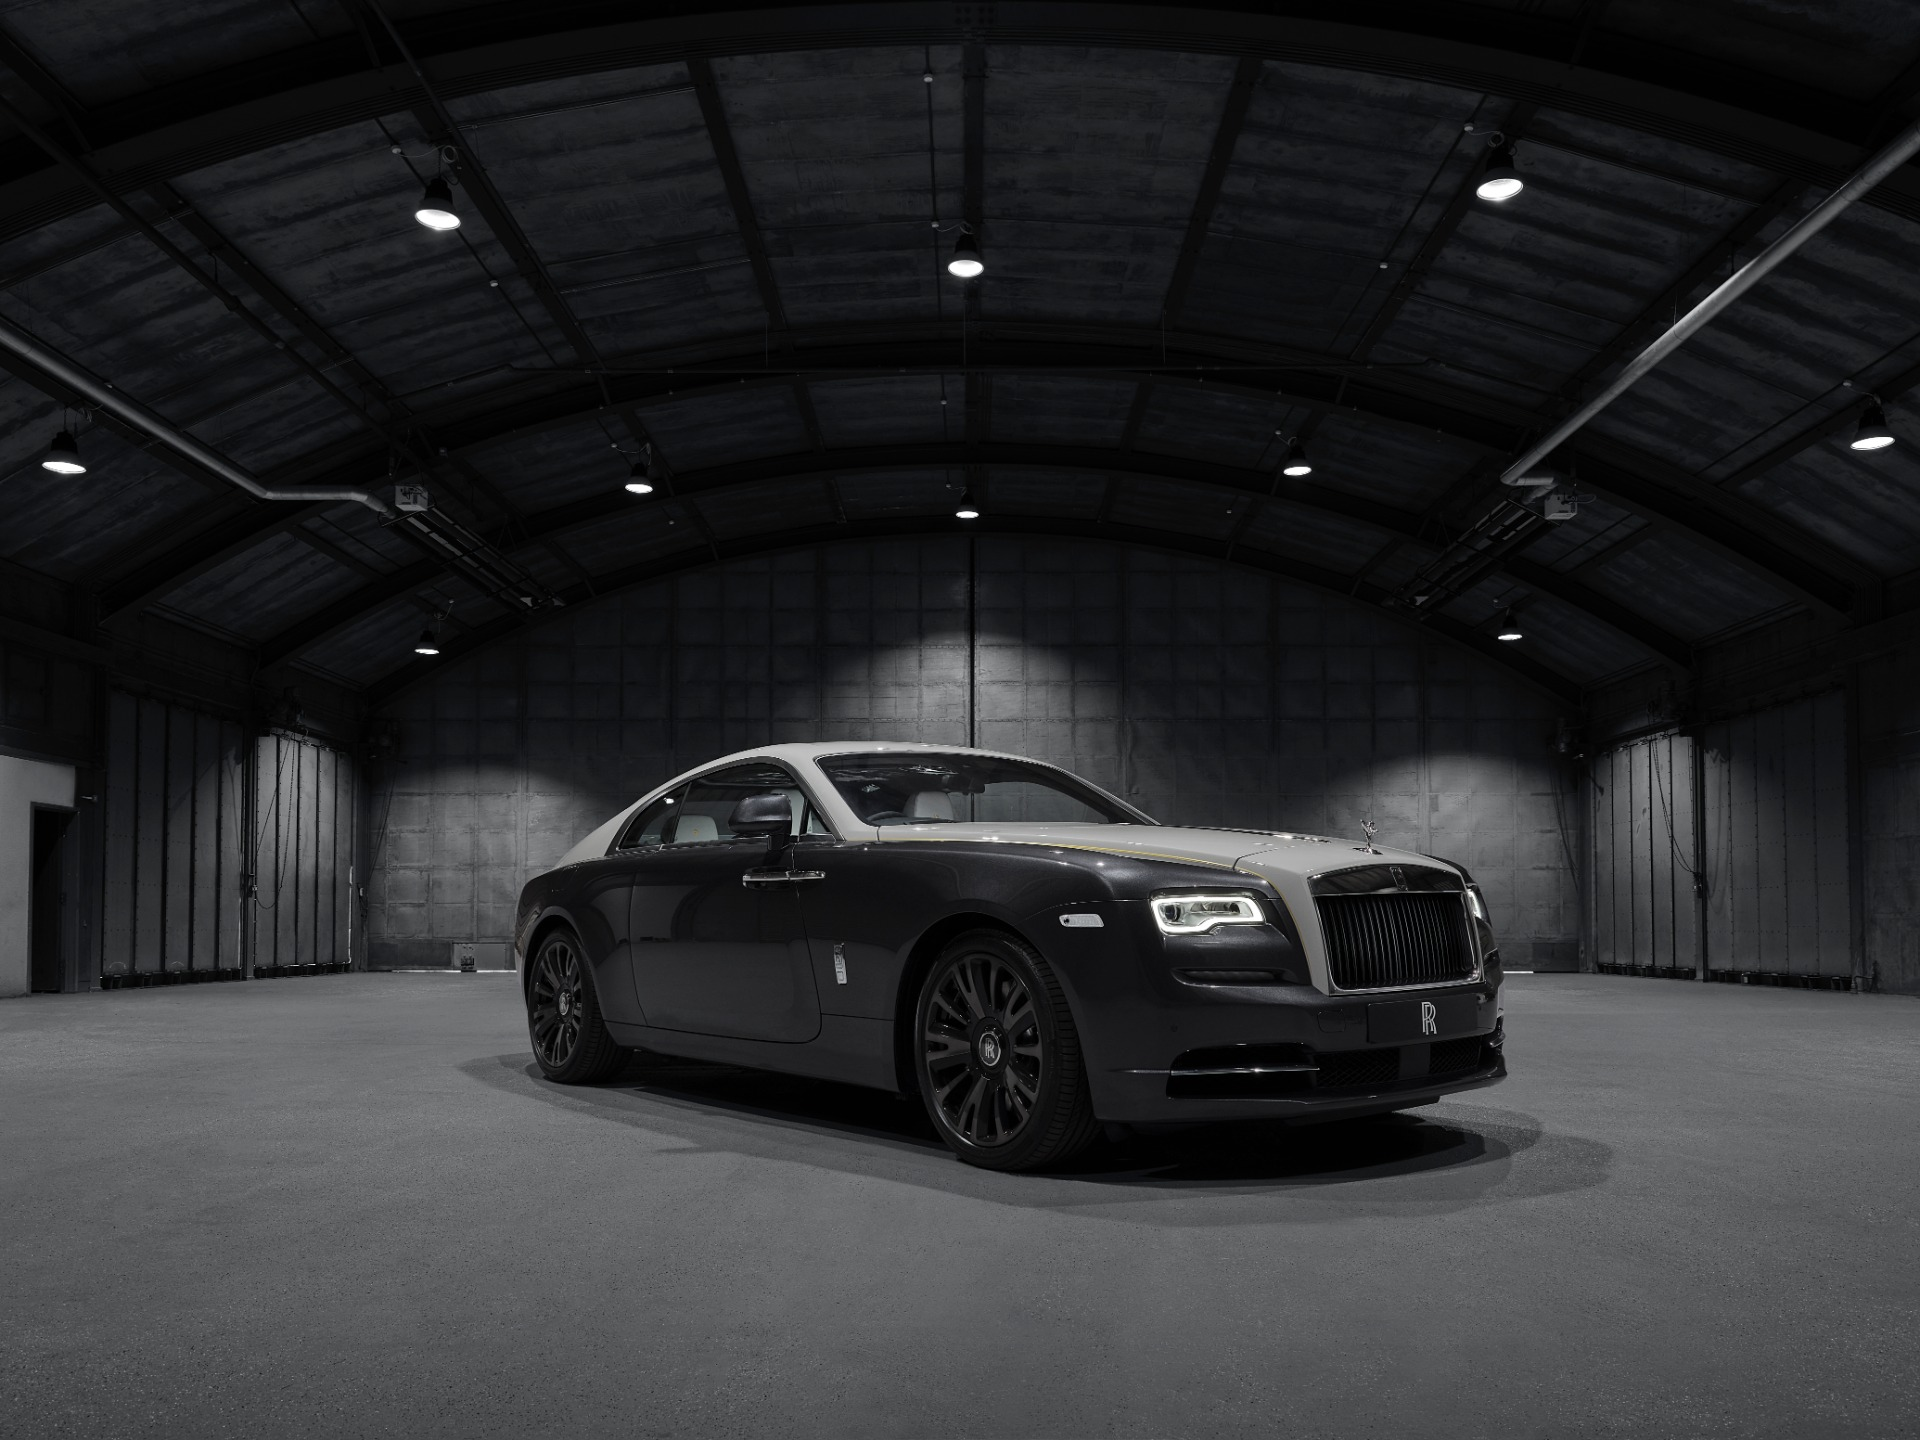 New 2020 Rolls-Royce Wraith Eagle for sale Sold at Aston Martin of Greenwich in Greenwich CT 06830 1